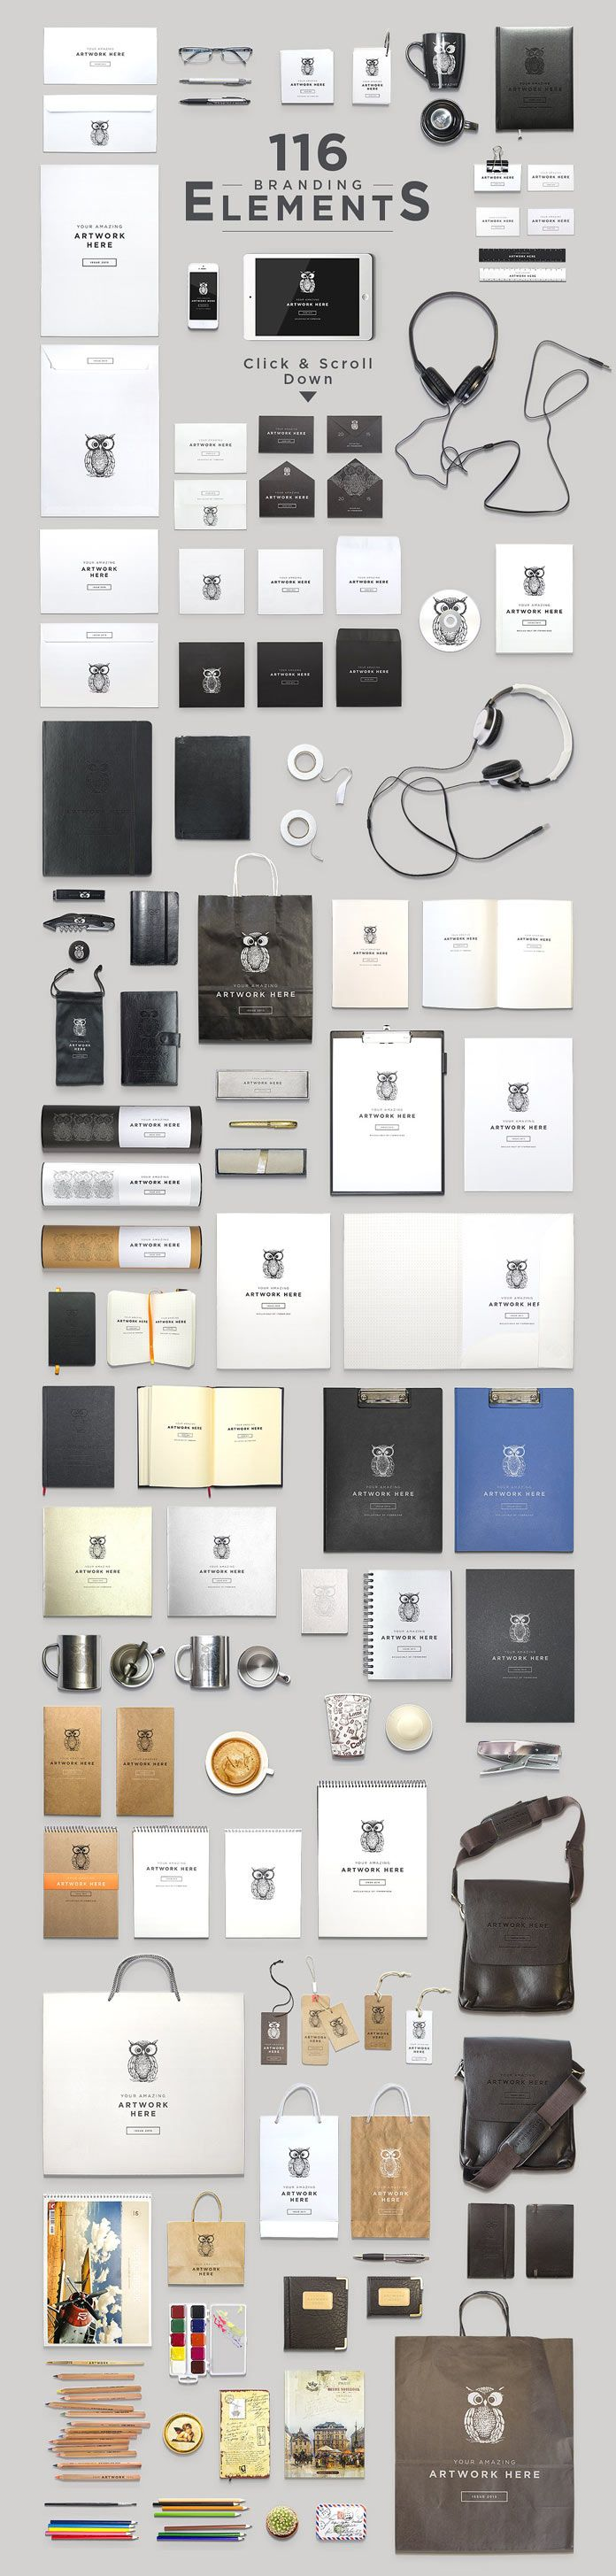 116 elements of brand and stationery materials.